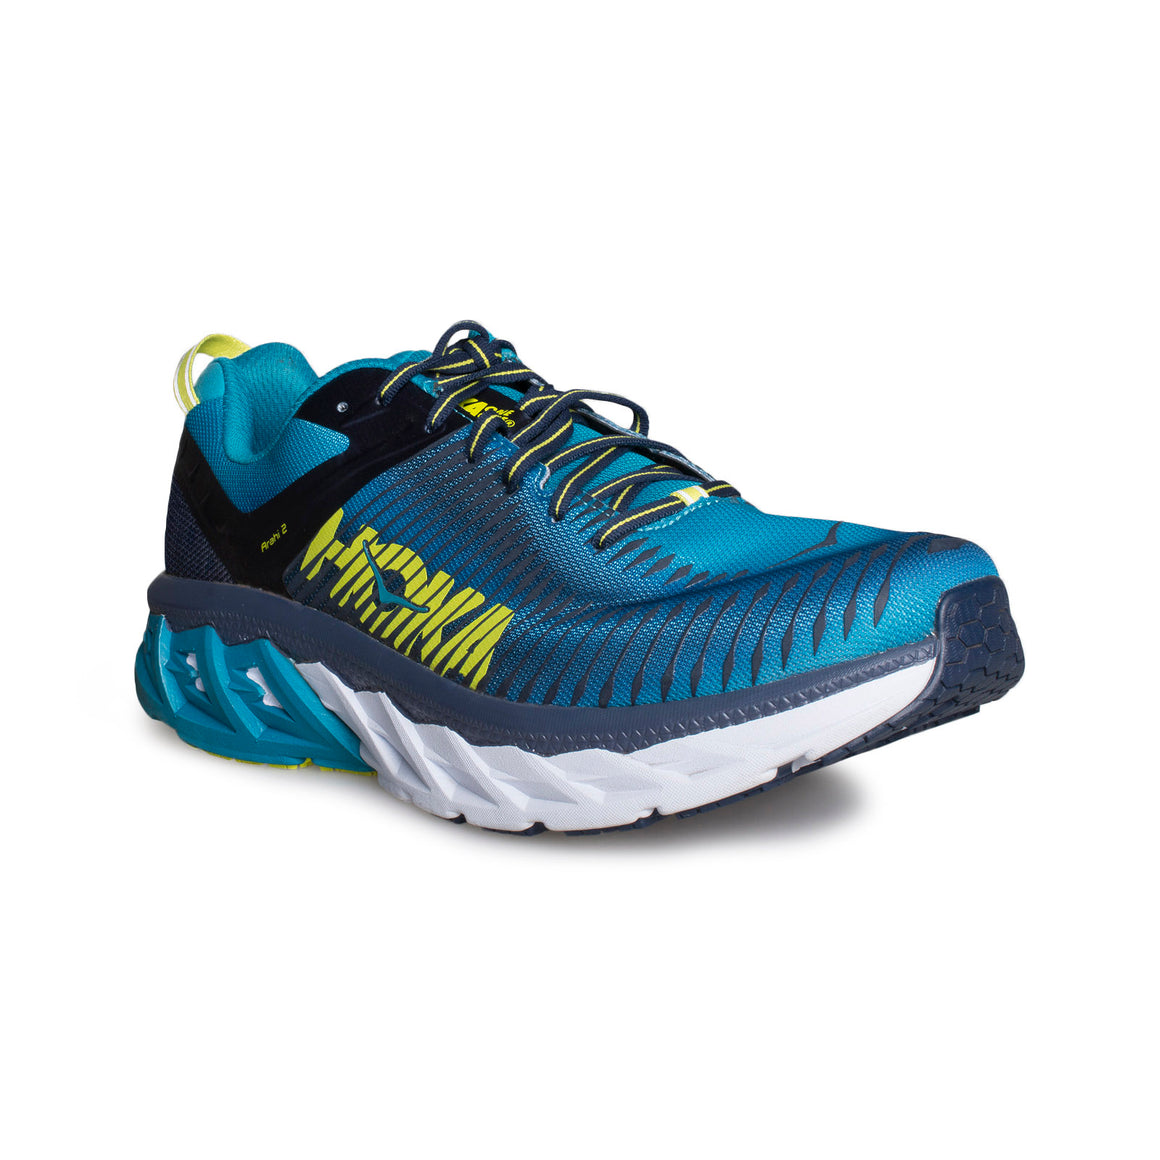 Hoka Arahi 2 Carribean Sea / Dress Blue Running Shoes - Men's